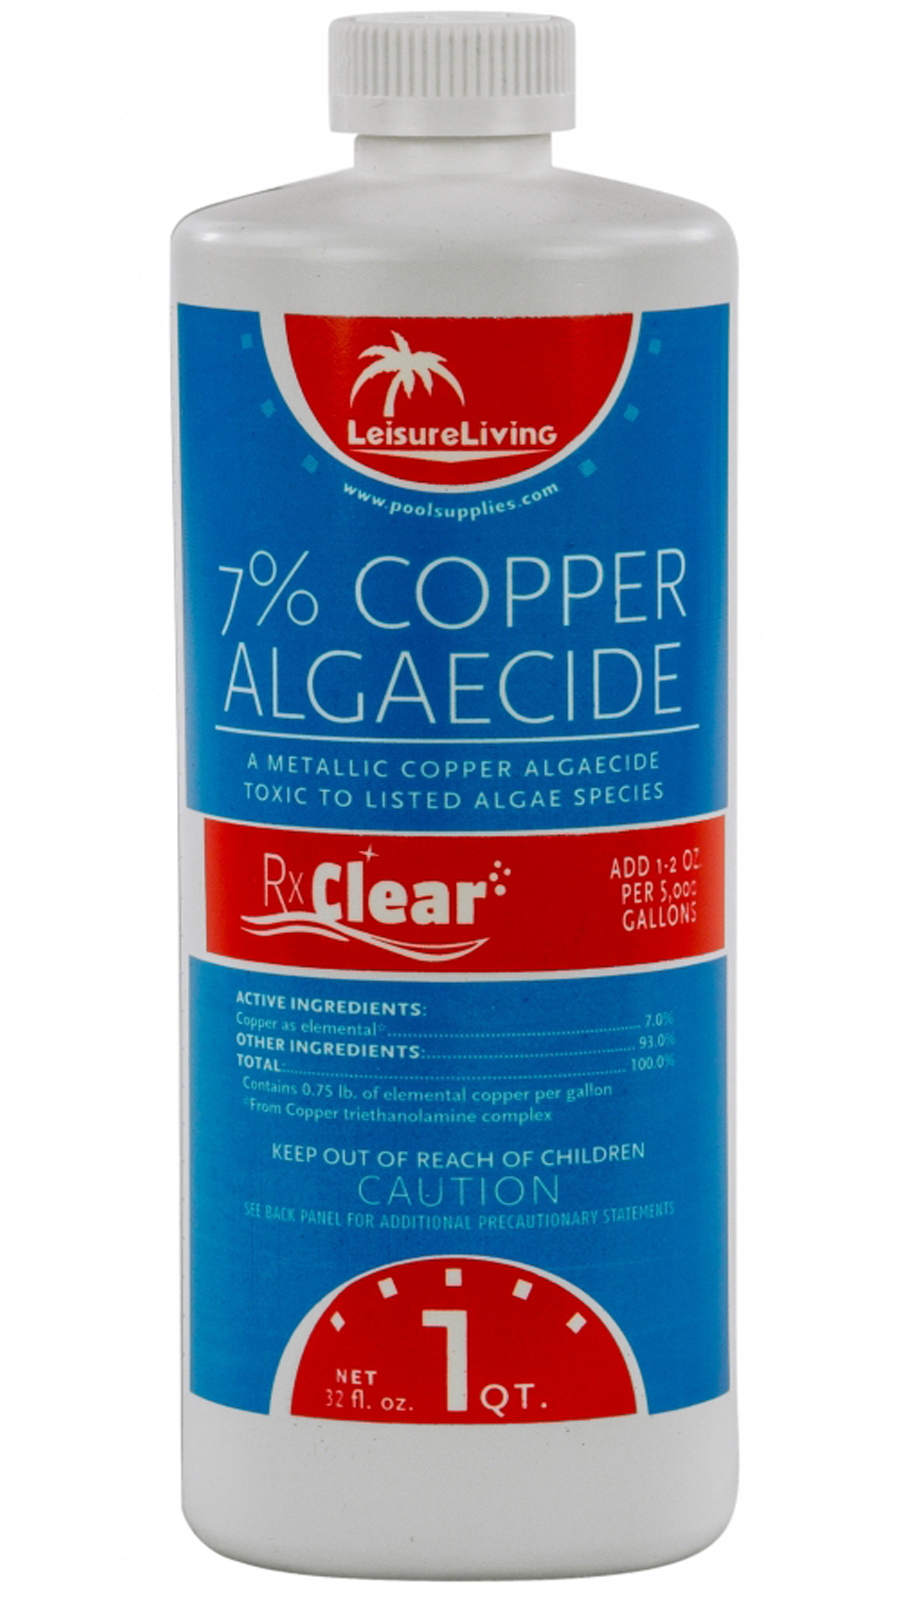 Rx clear swimming pool 7 copper algaecide algae chemical 1 quart bottle ebay Swimming pool algae treatment